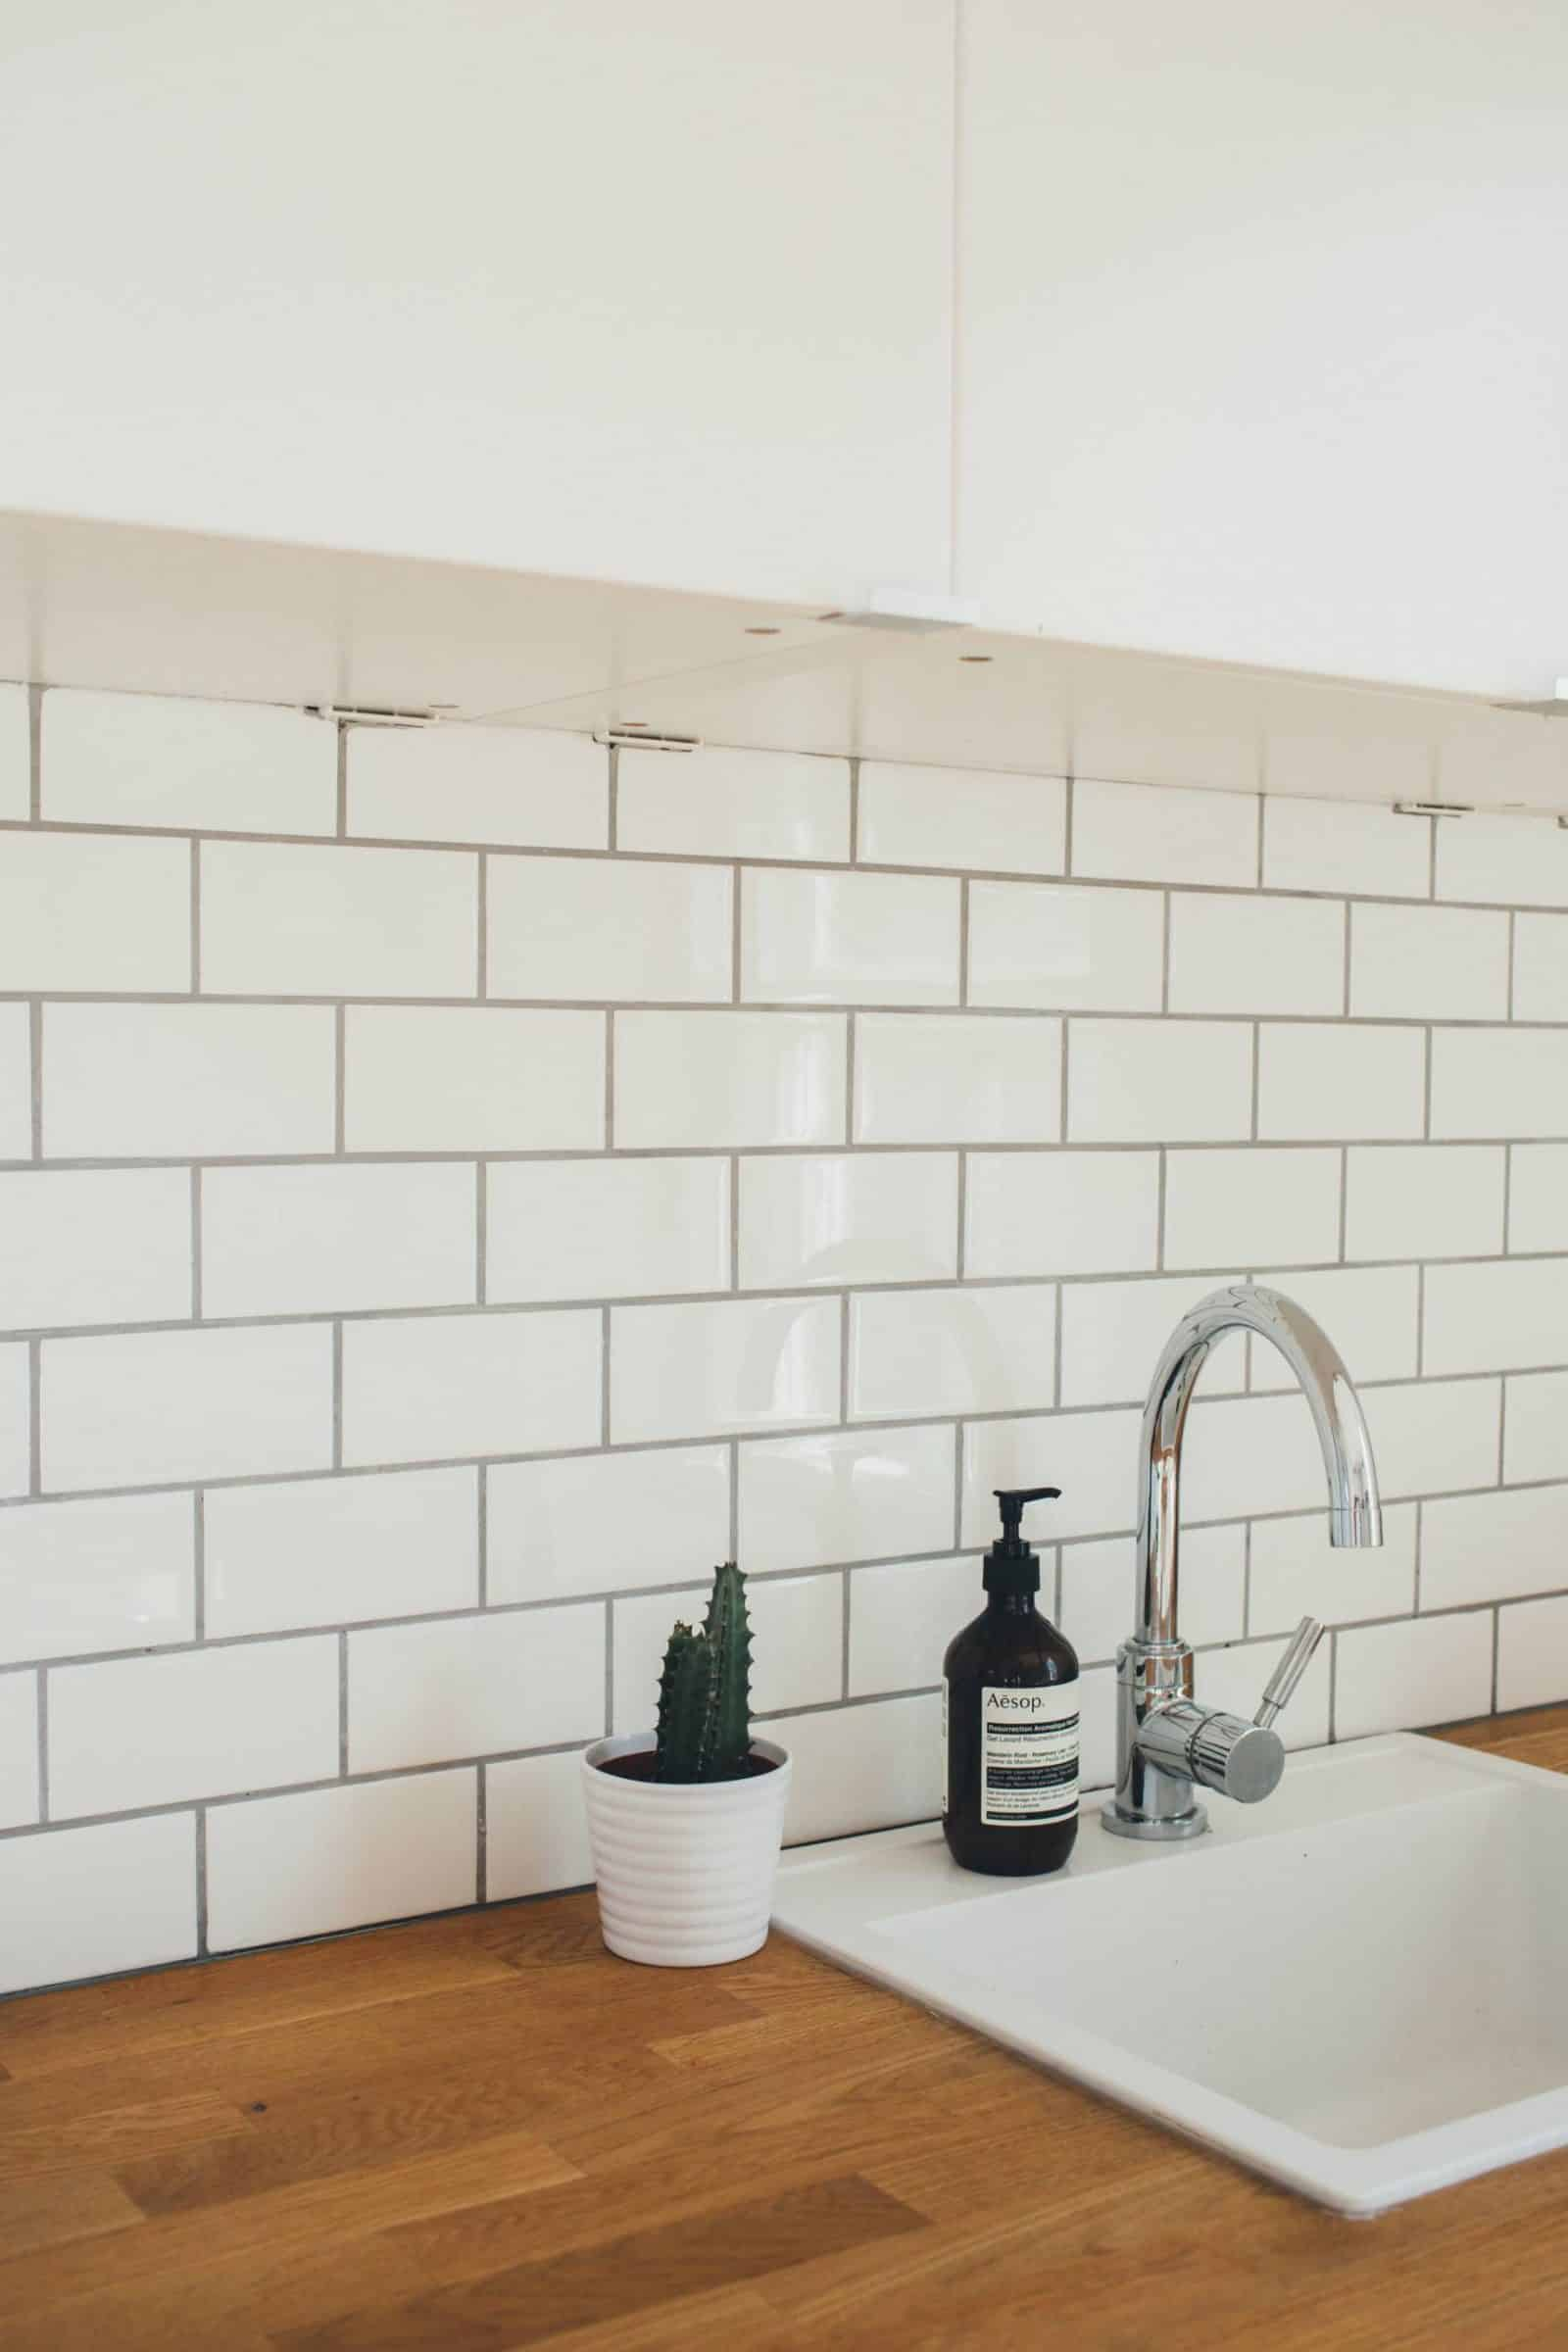 How to tile safely